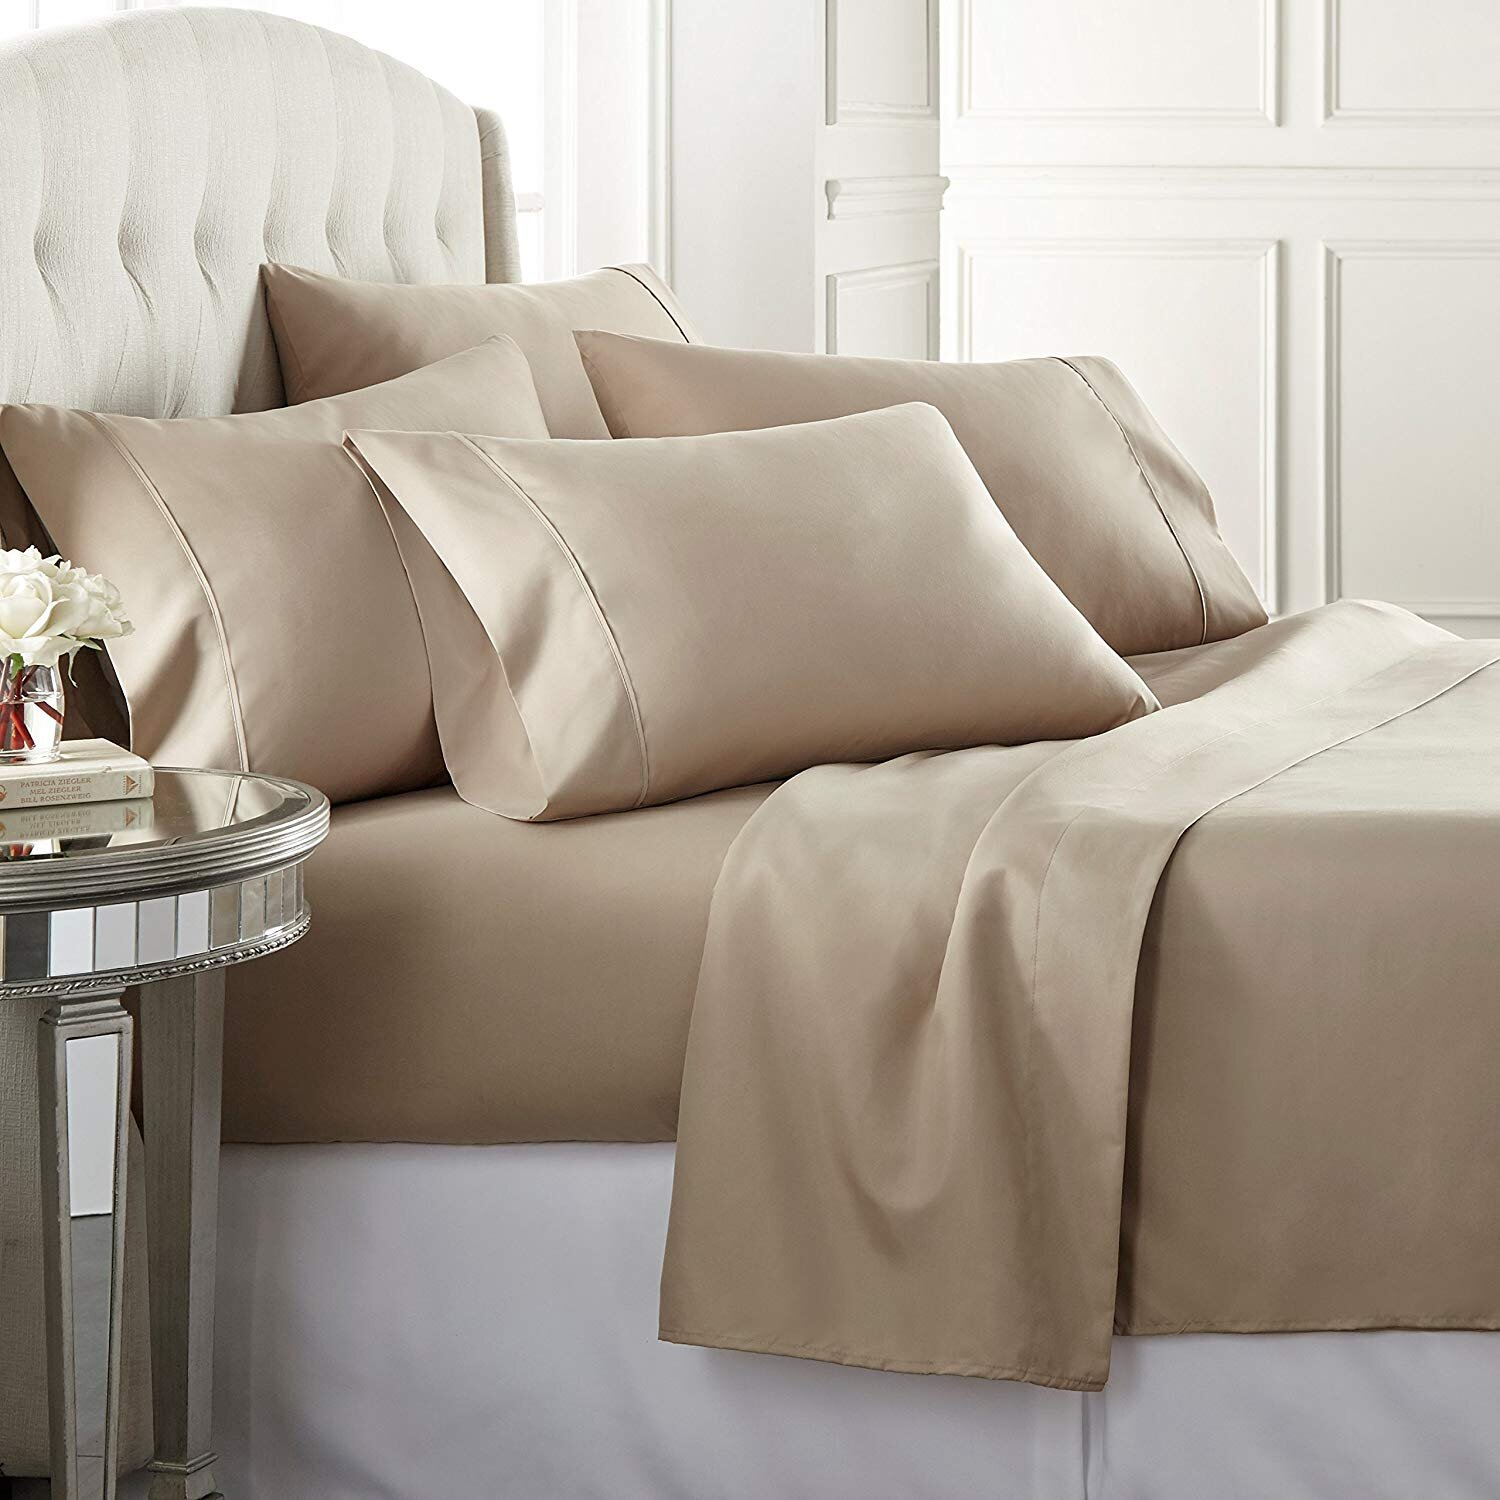 Tan Yellow Rich Cotton /& Polyester Plain Dyed Fitted Sheets OR Pair Pillowcases